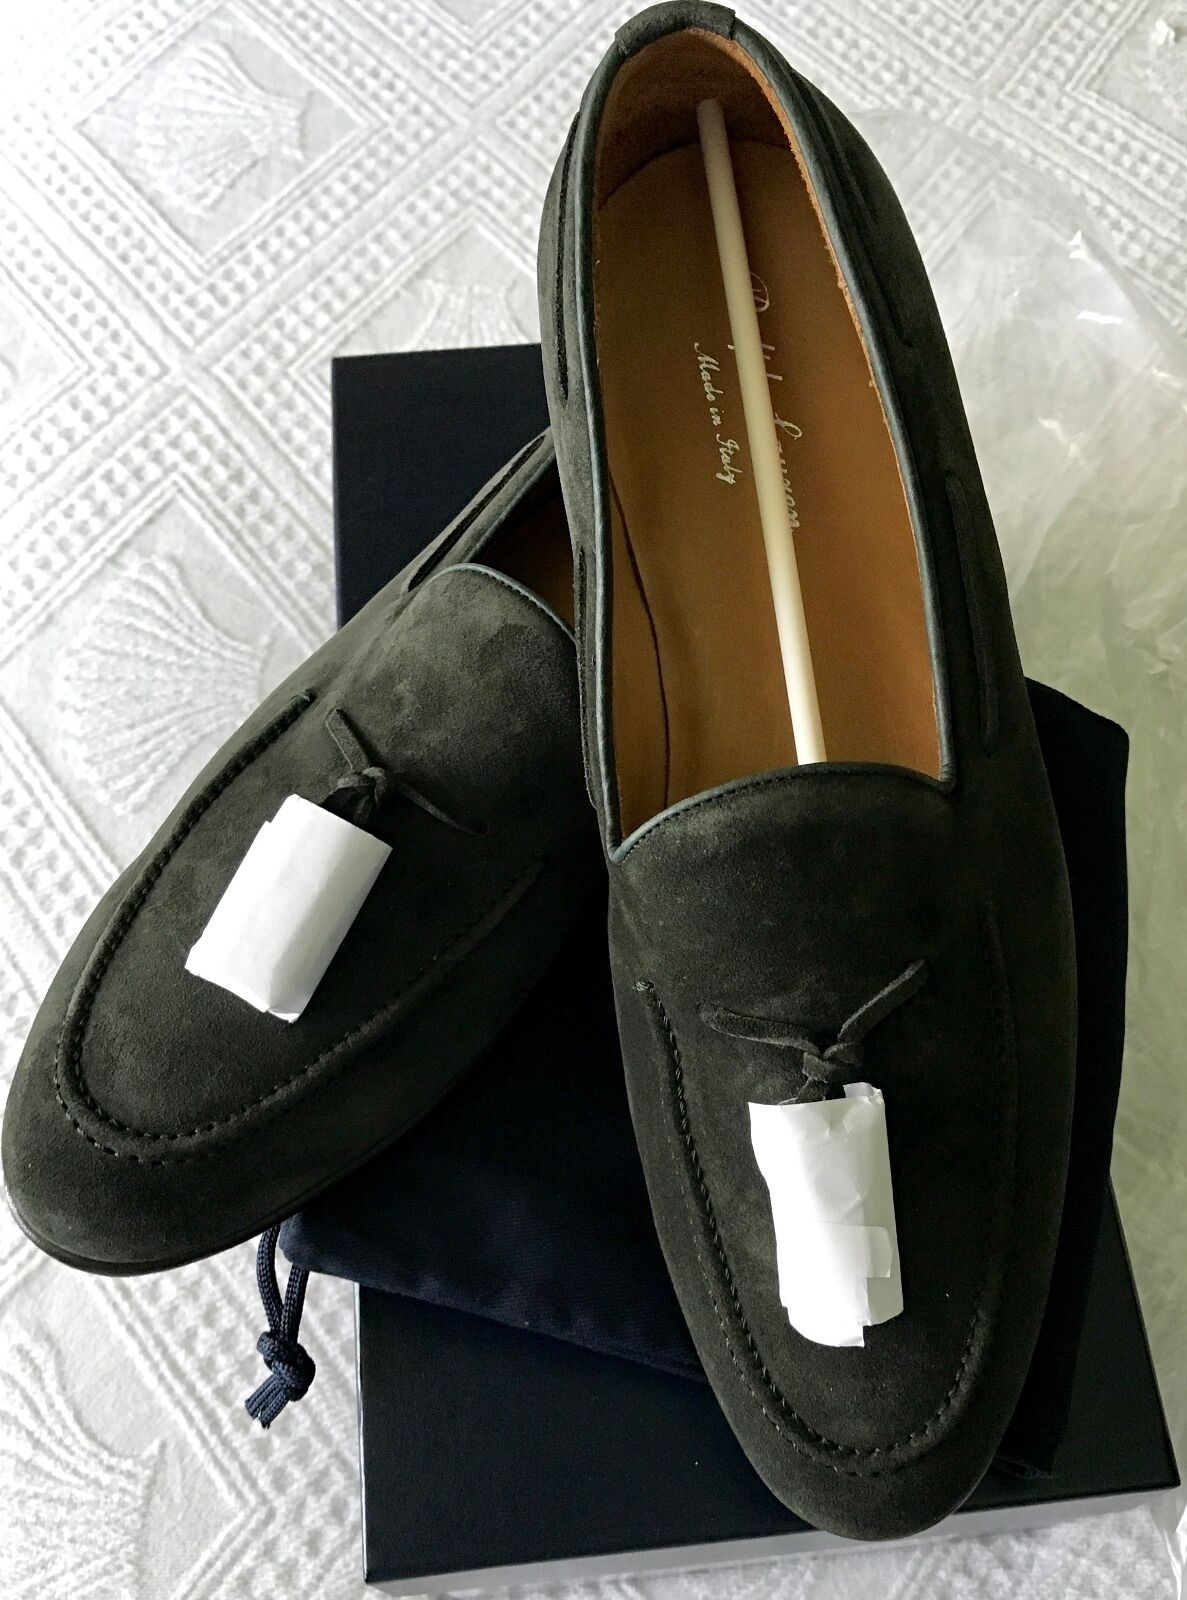 Felice shopping NEW NEW NEW Ralph Lauren CHESSINGTON Tassle Loafers Suede Leather scarpe  Sz US 10.5  acquistare ora